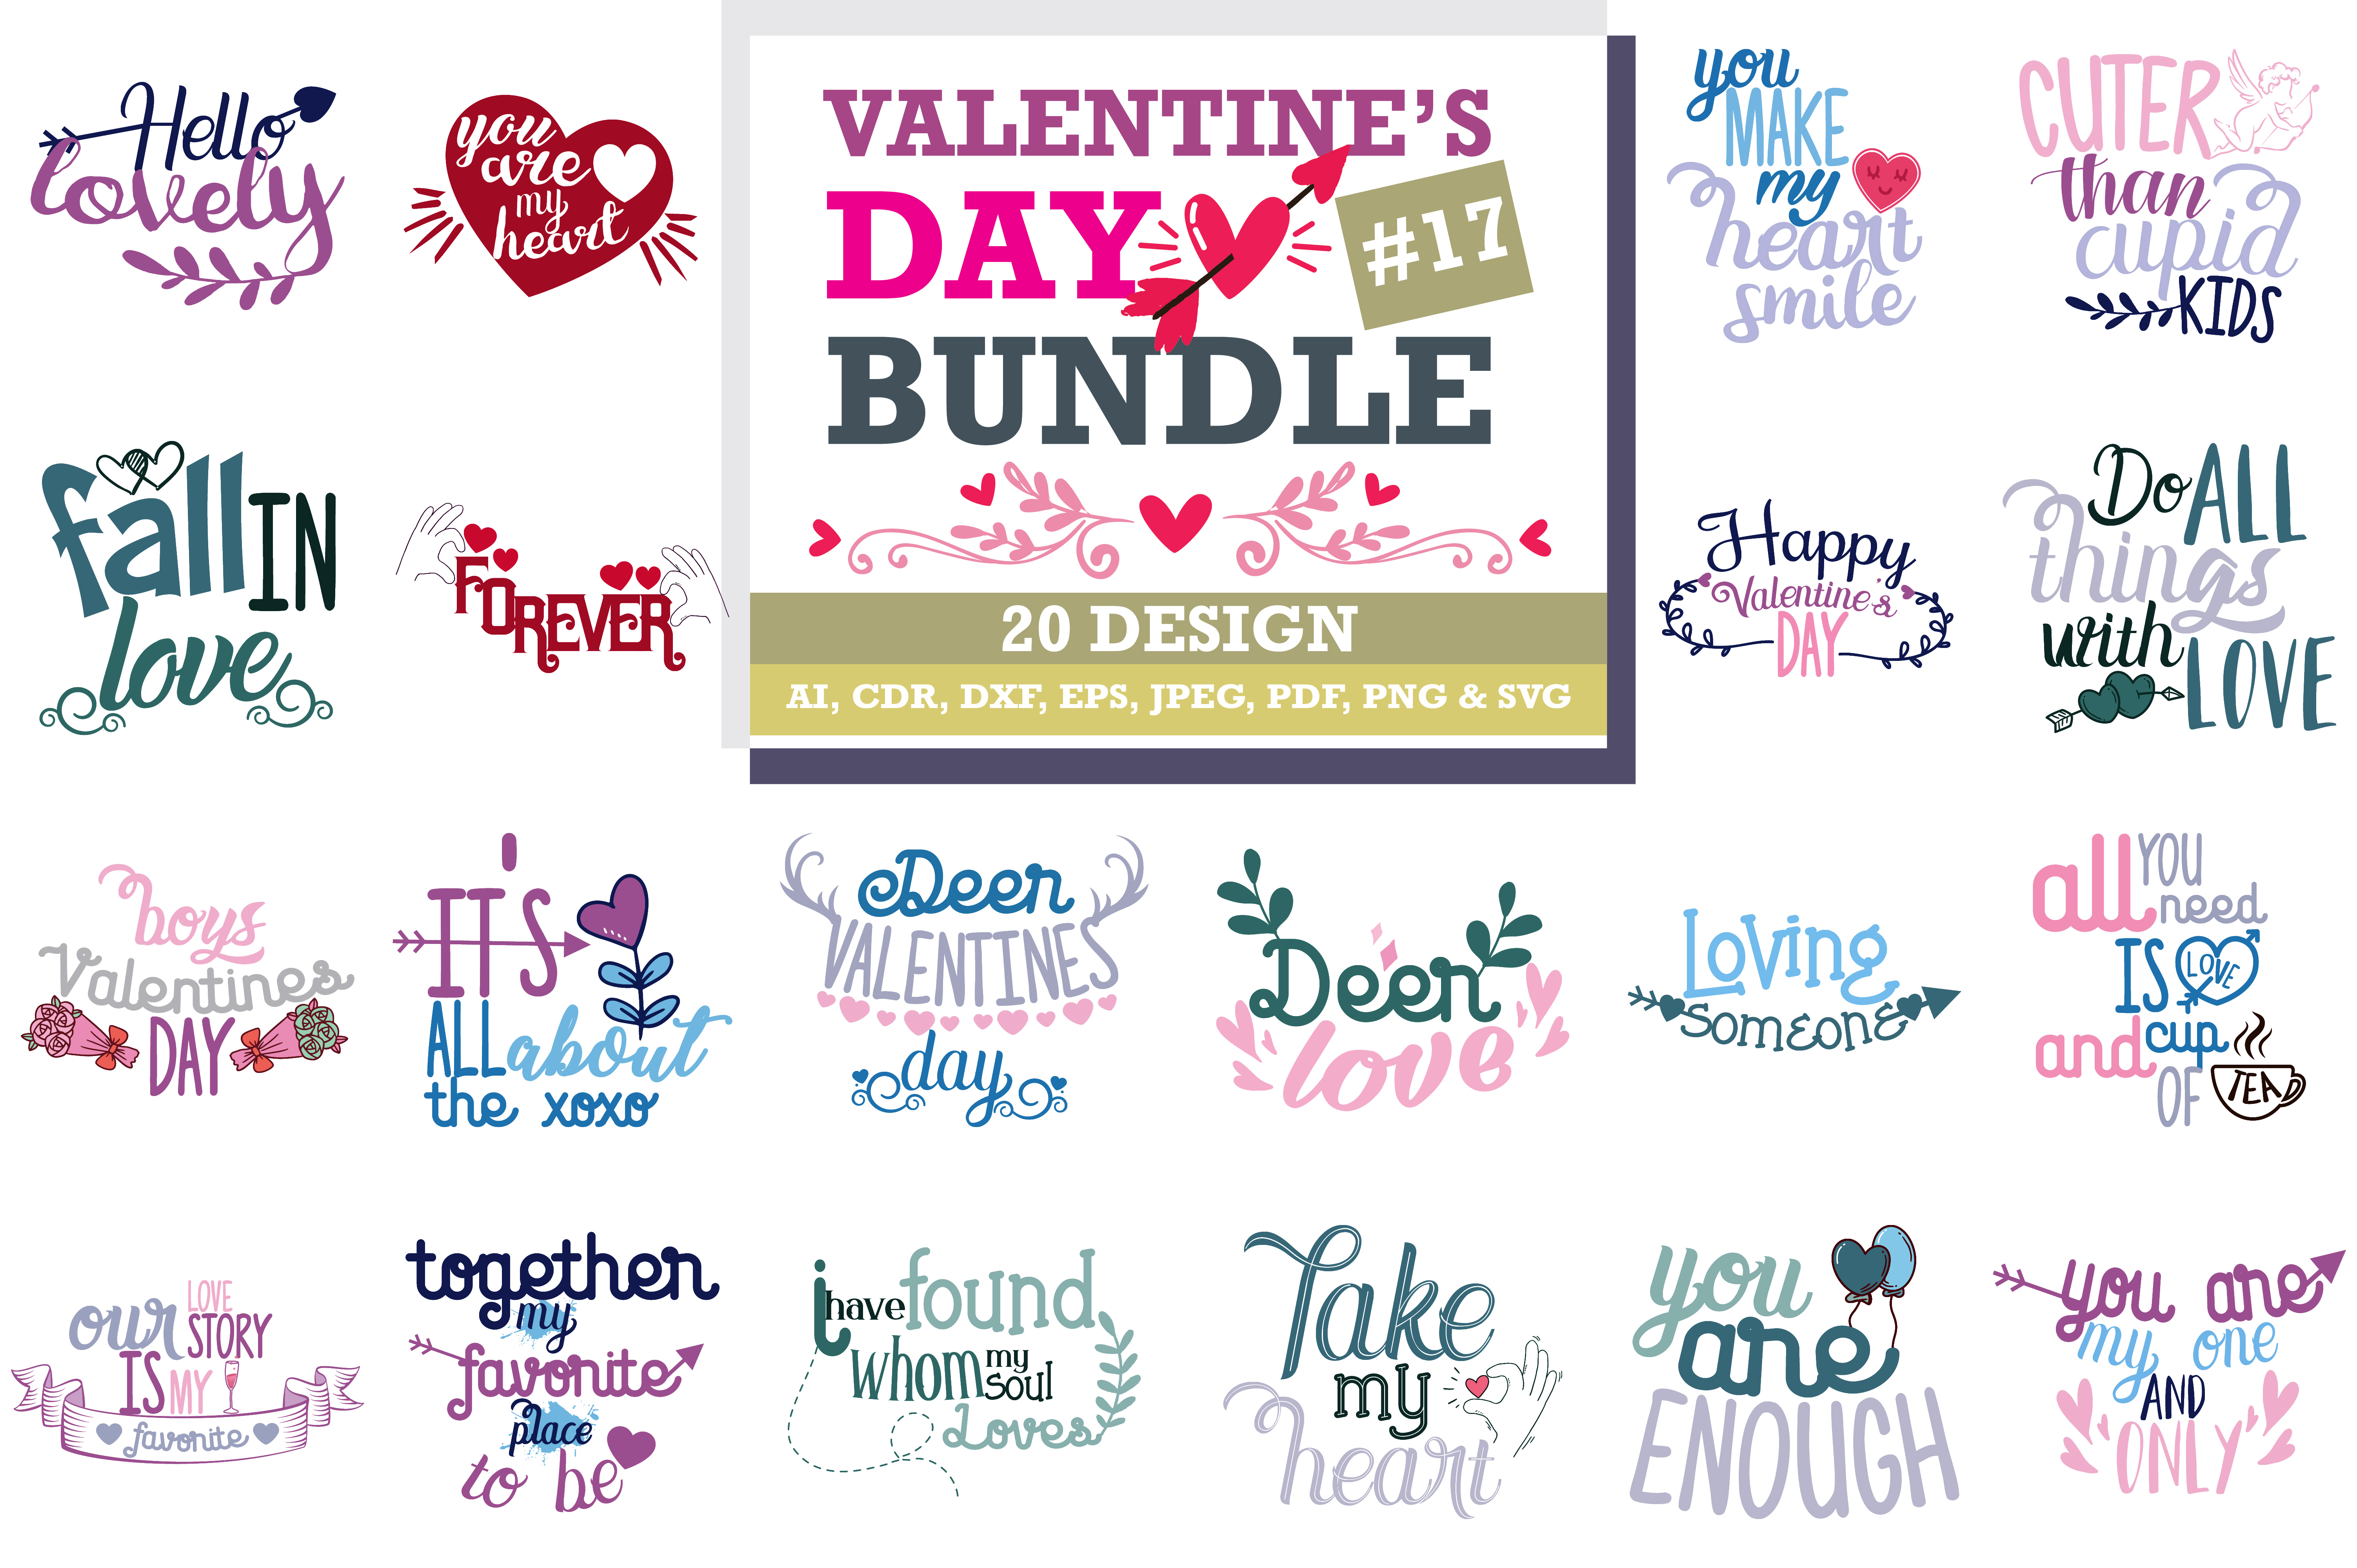 View Cuter Than Cupid Valentine's Day Svg And Dxf Eps Cut File Ò Png Ò Vector Ò Calligraphy Ò Download File Ò Cricut Ò Silhouette Crafter Files